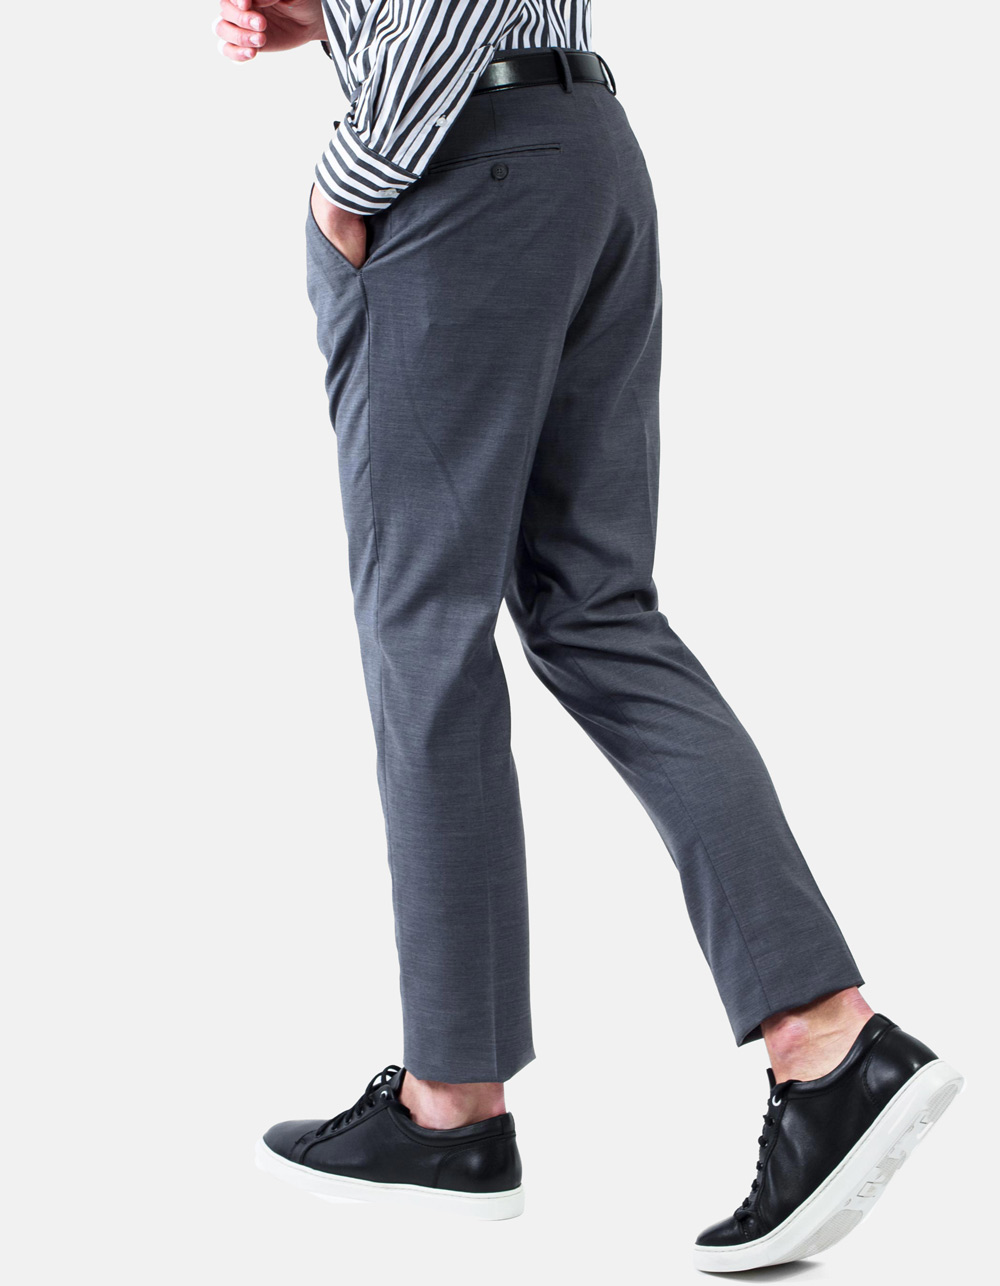 Dress grey trousers - Backside